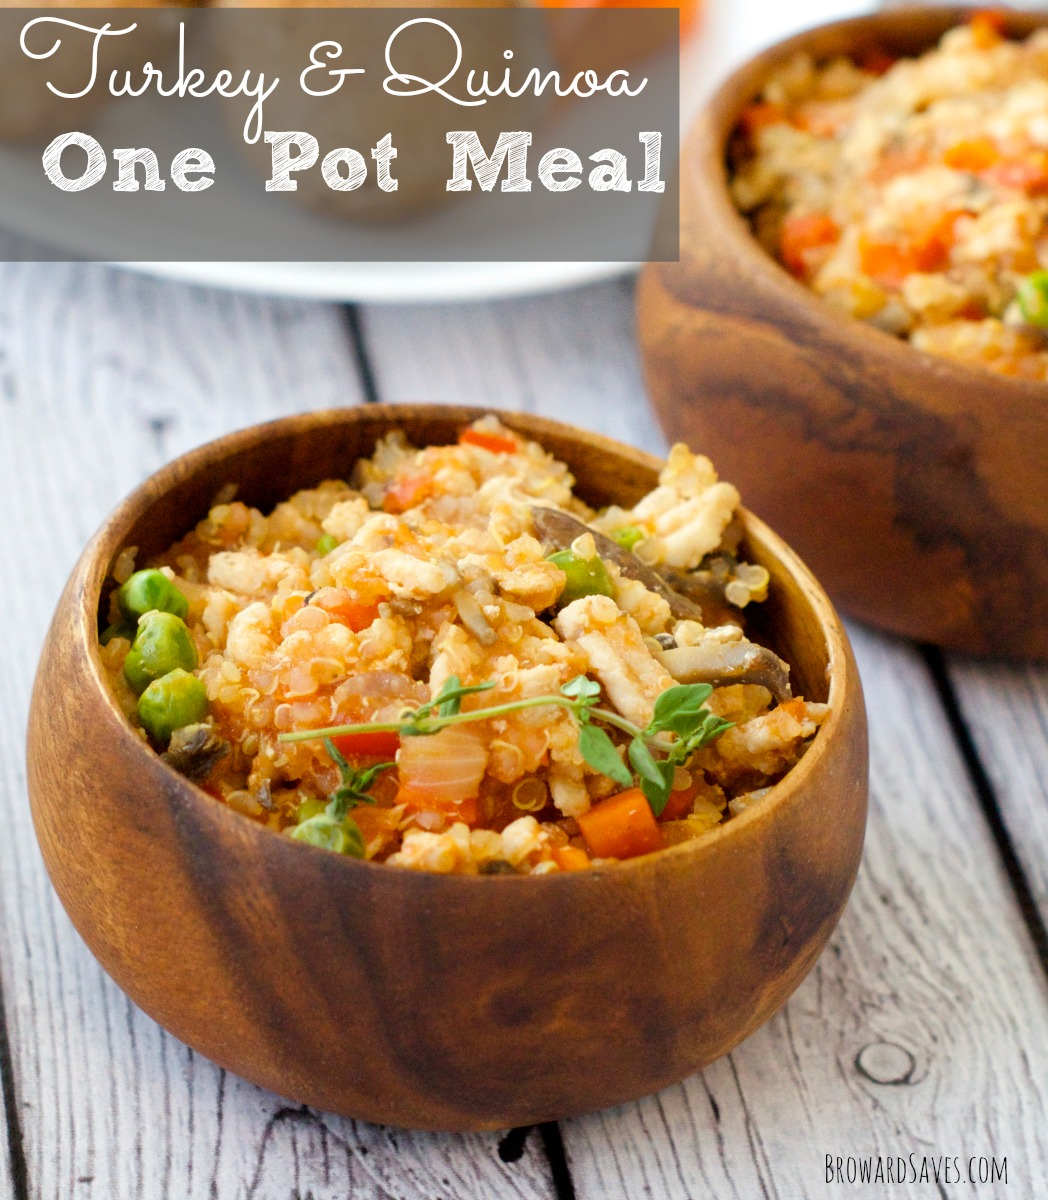 Simple Dinner Ideas One Pot Meals: Turkey Quinoa One Pot Meal